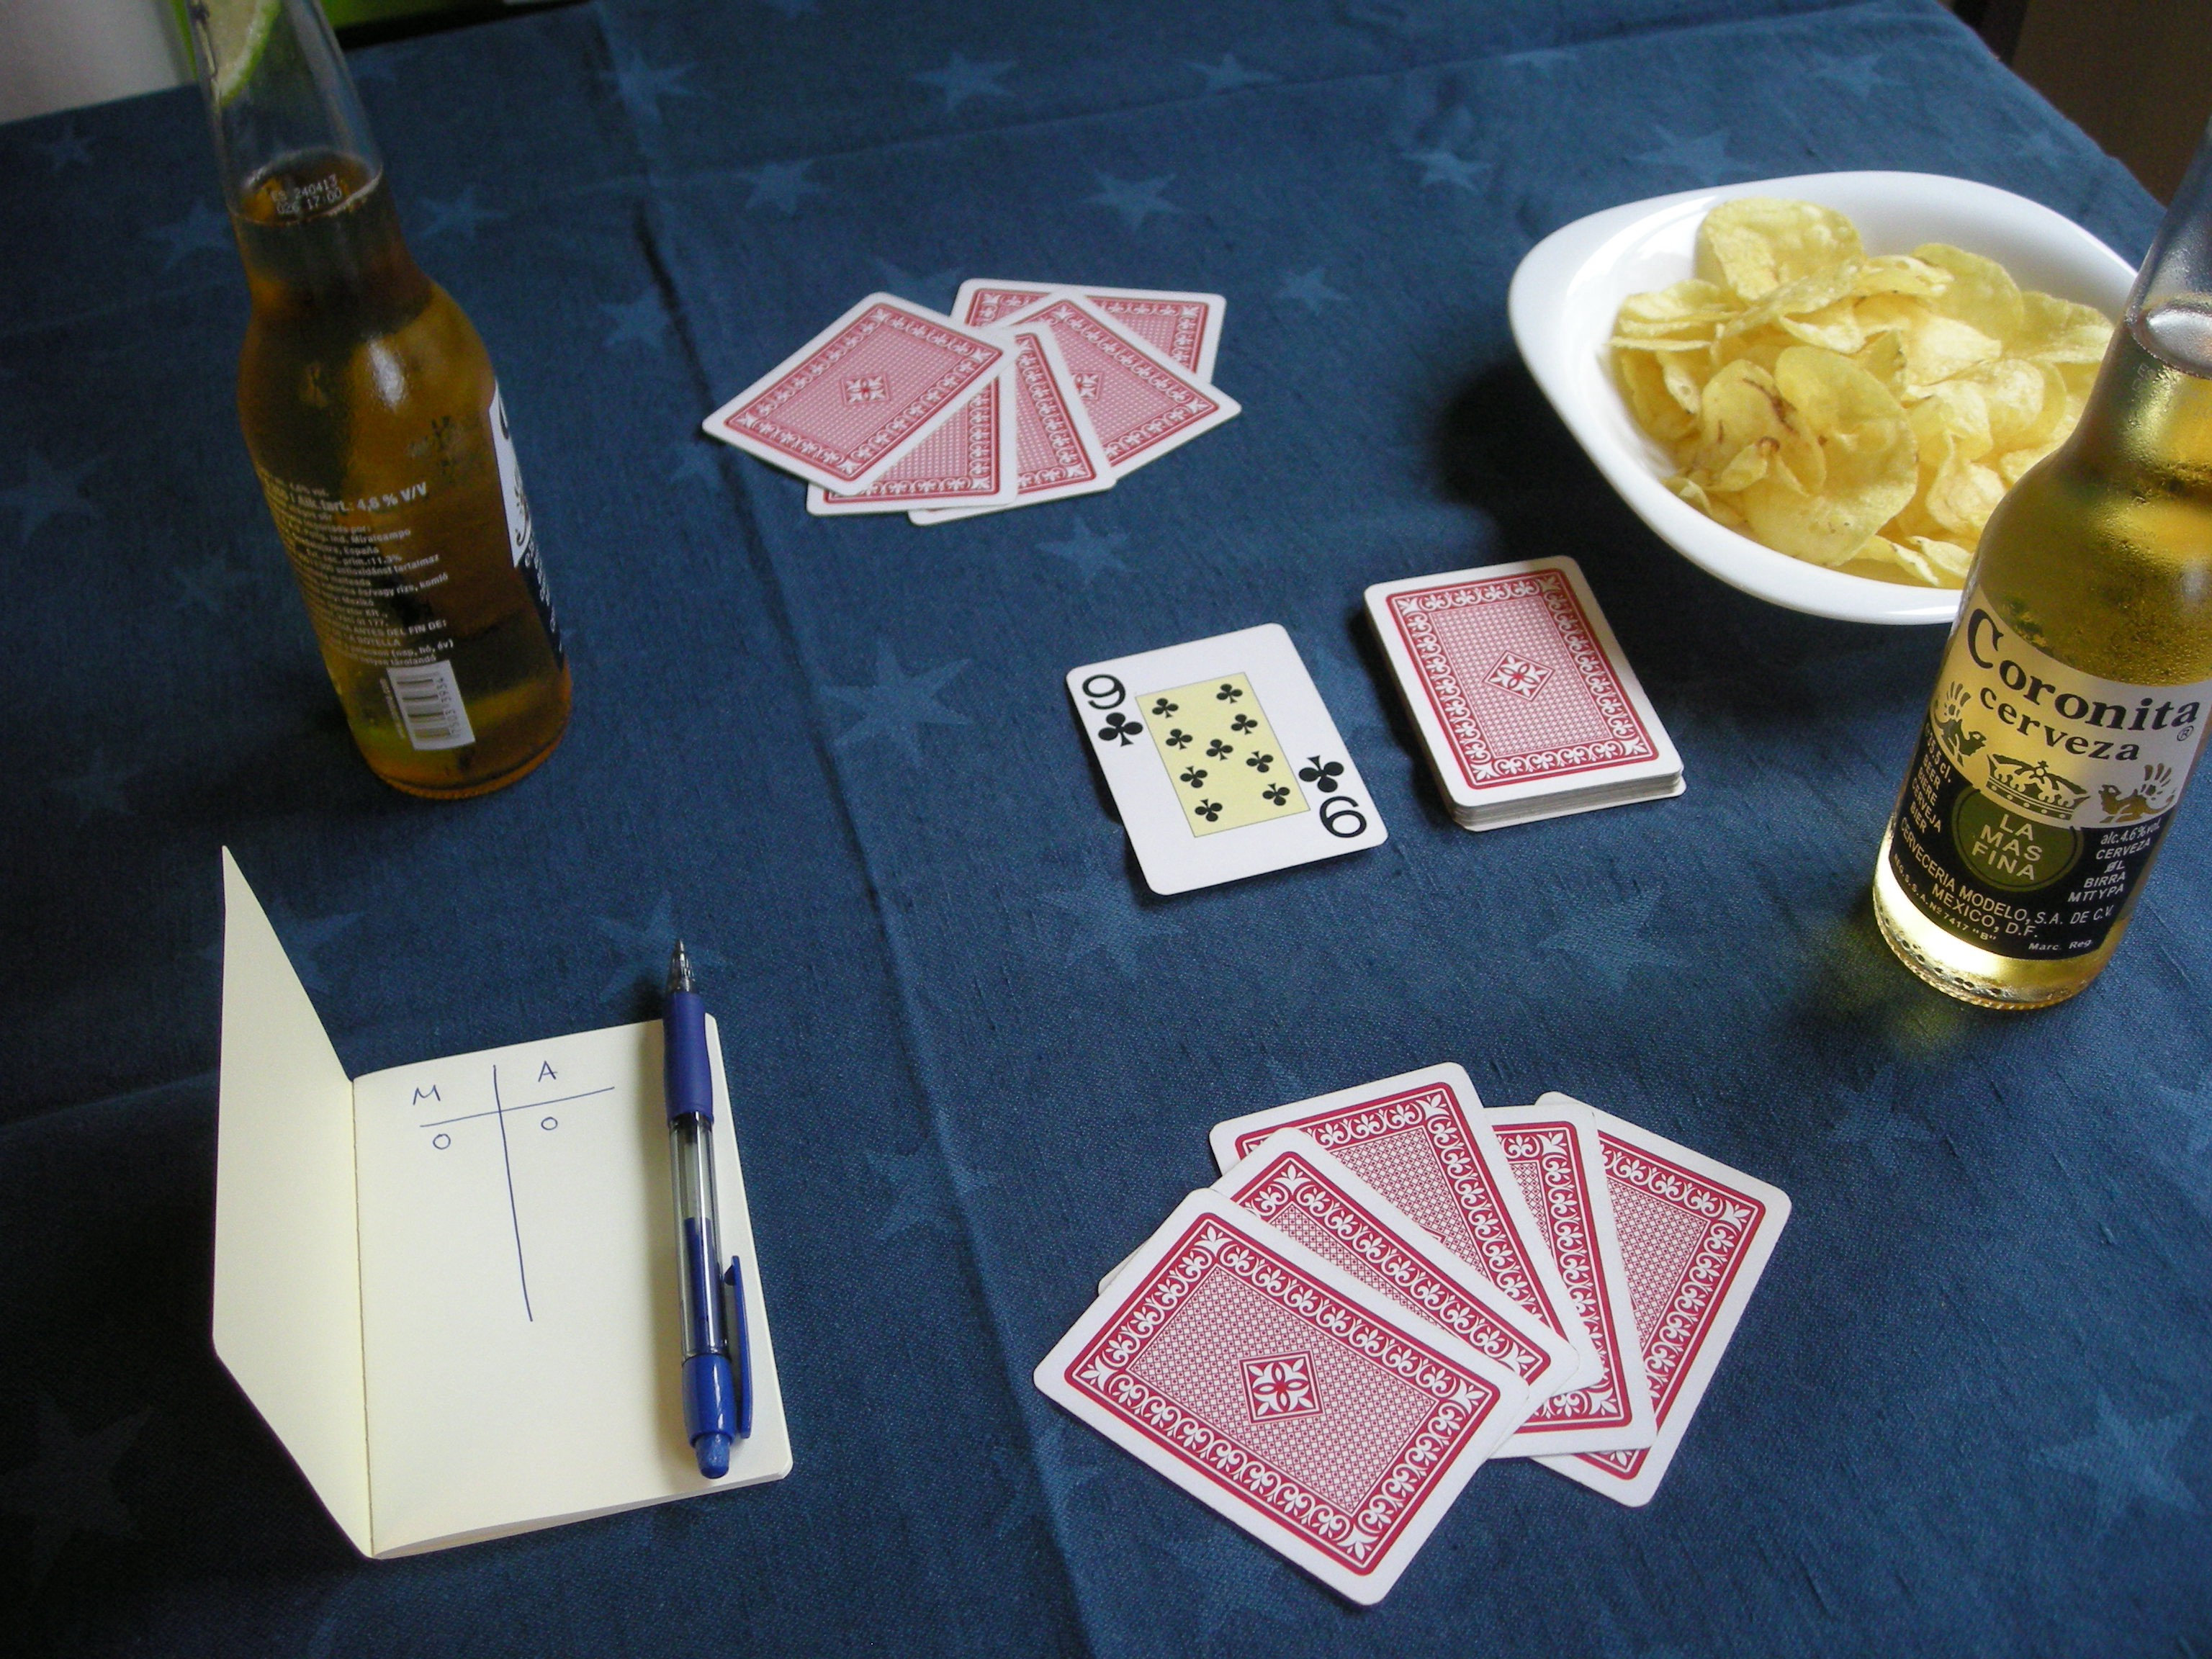 Two Player Card Games 2 Gamer Card Games Are Bet Enjoyable As By Robart Medium